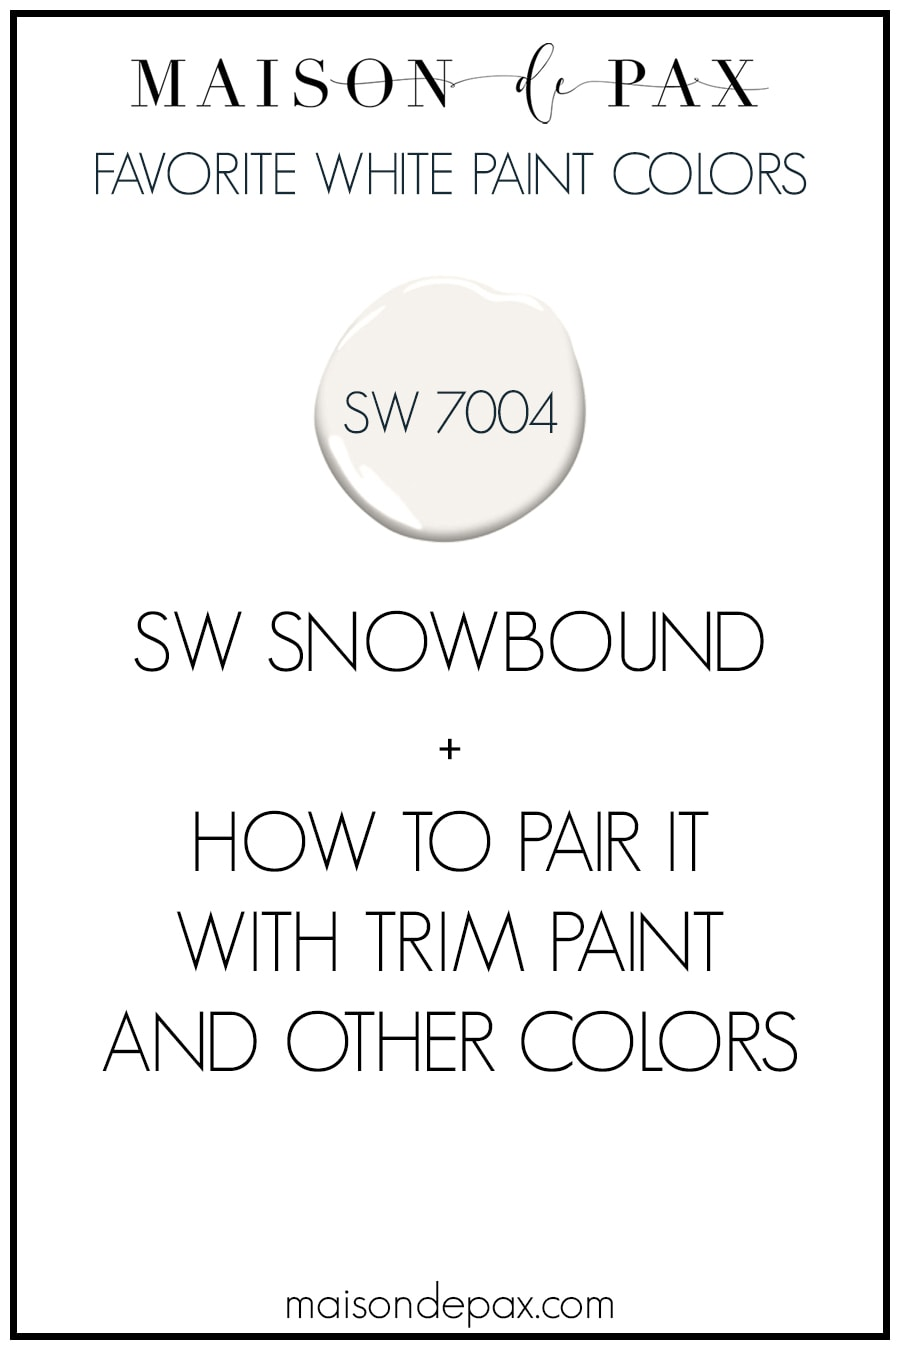 What colors to pair with SW Snowbound